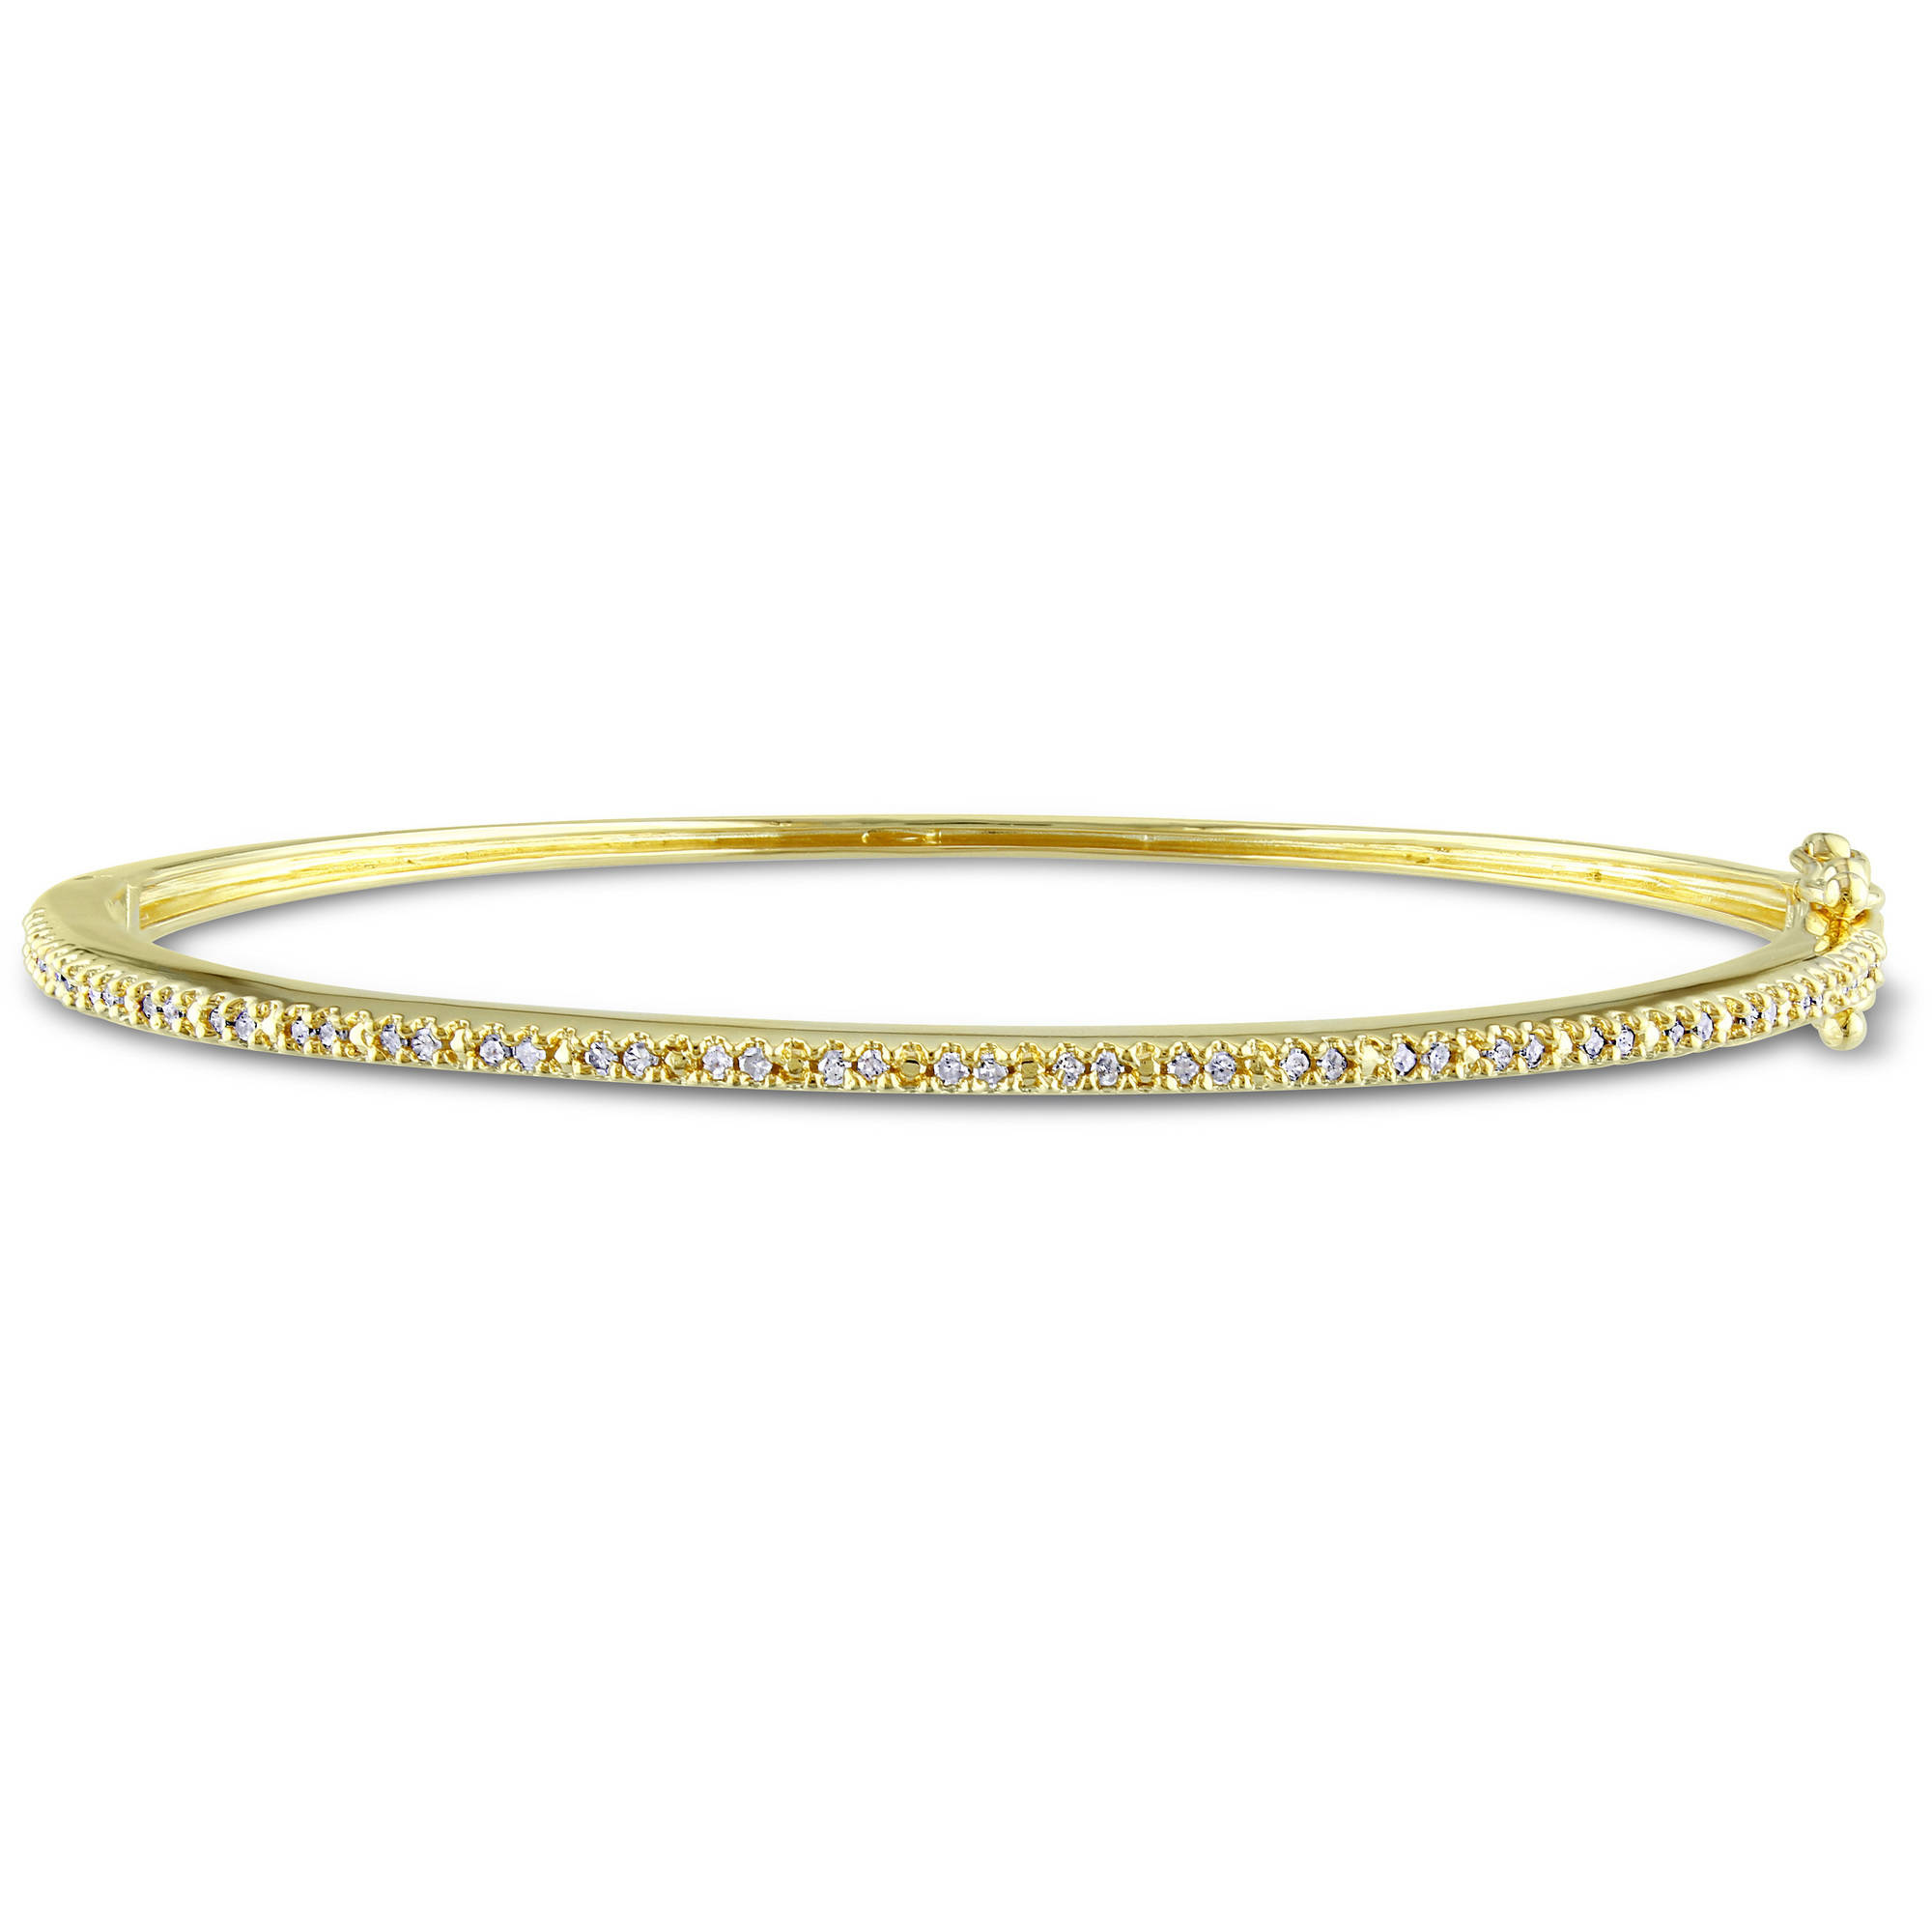 Miabella 1/4 Carat T.W. Diamond Yellow Rhodium-Plated Sterling Silver Bangle, 7""